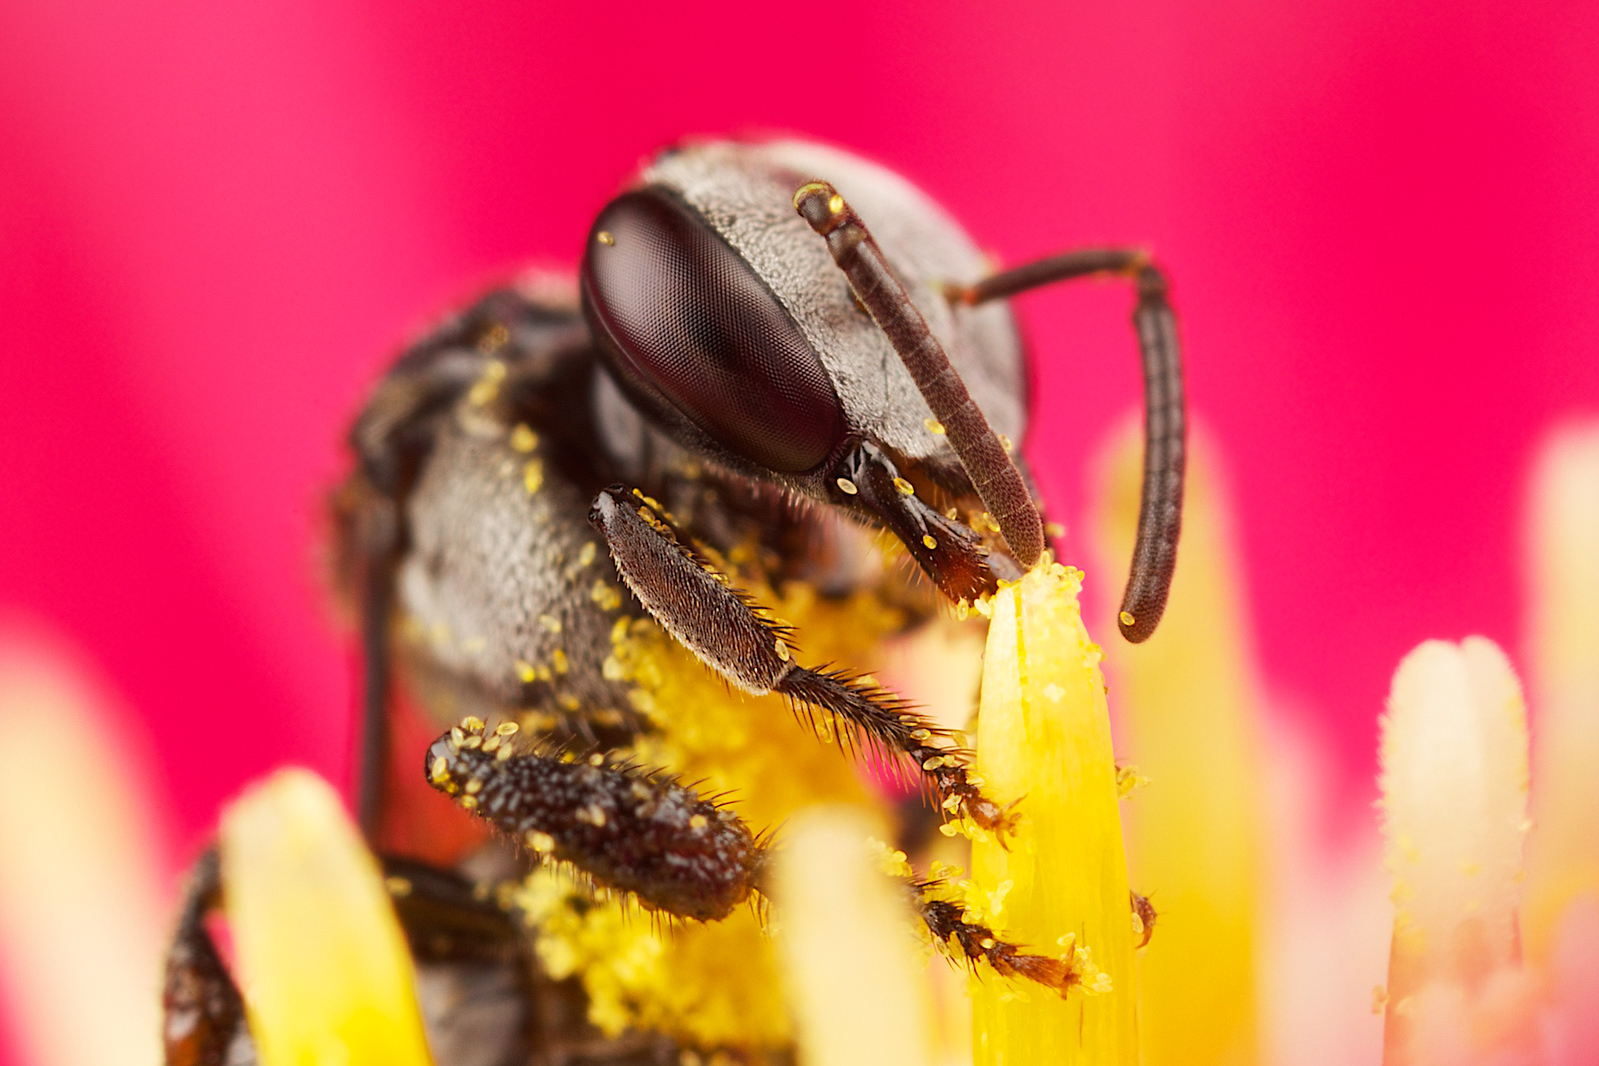 Native Aussie bee takes pollen from a pink chrysanthemum.